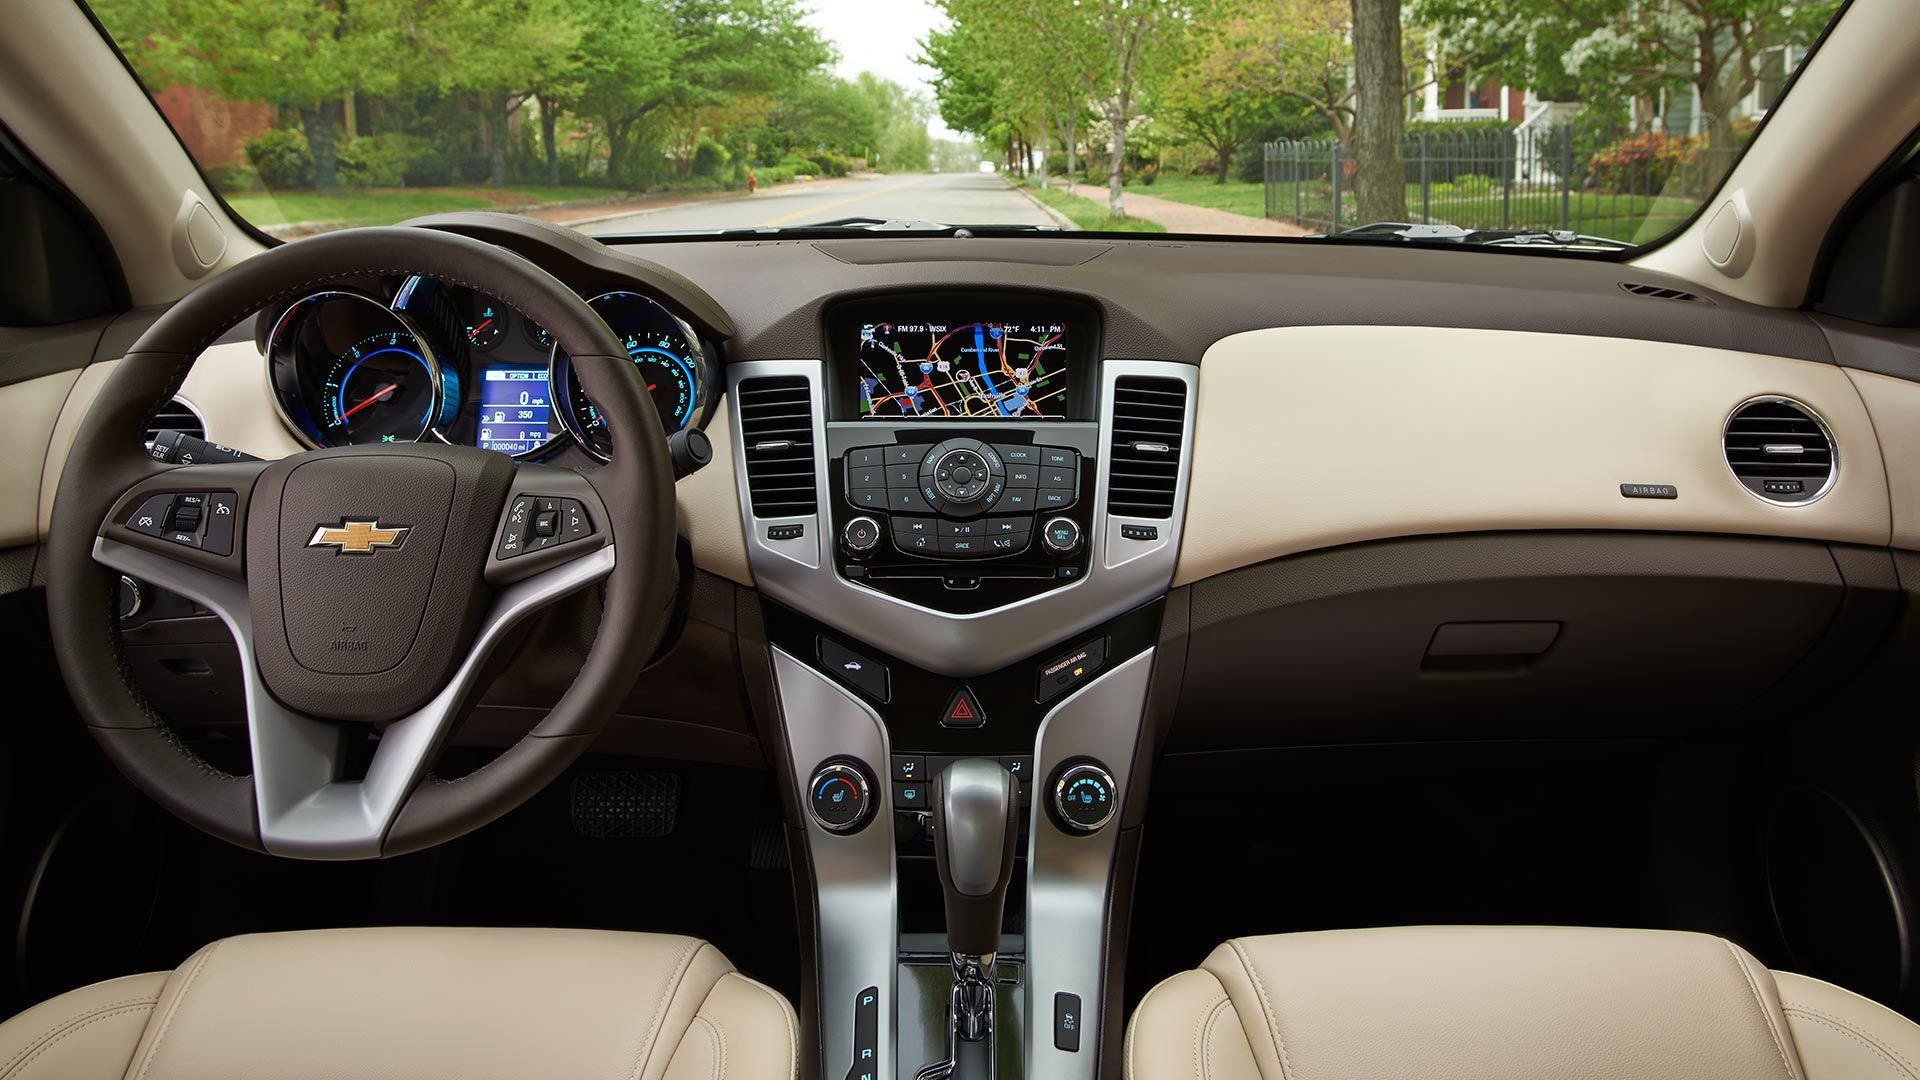 2015 Chevrolet Cruze Interior The Interior Of The 2015 Cruze Is Emasculate Read The Full Review Chevy Cruze Chevrolet Cruze Cruze